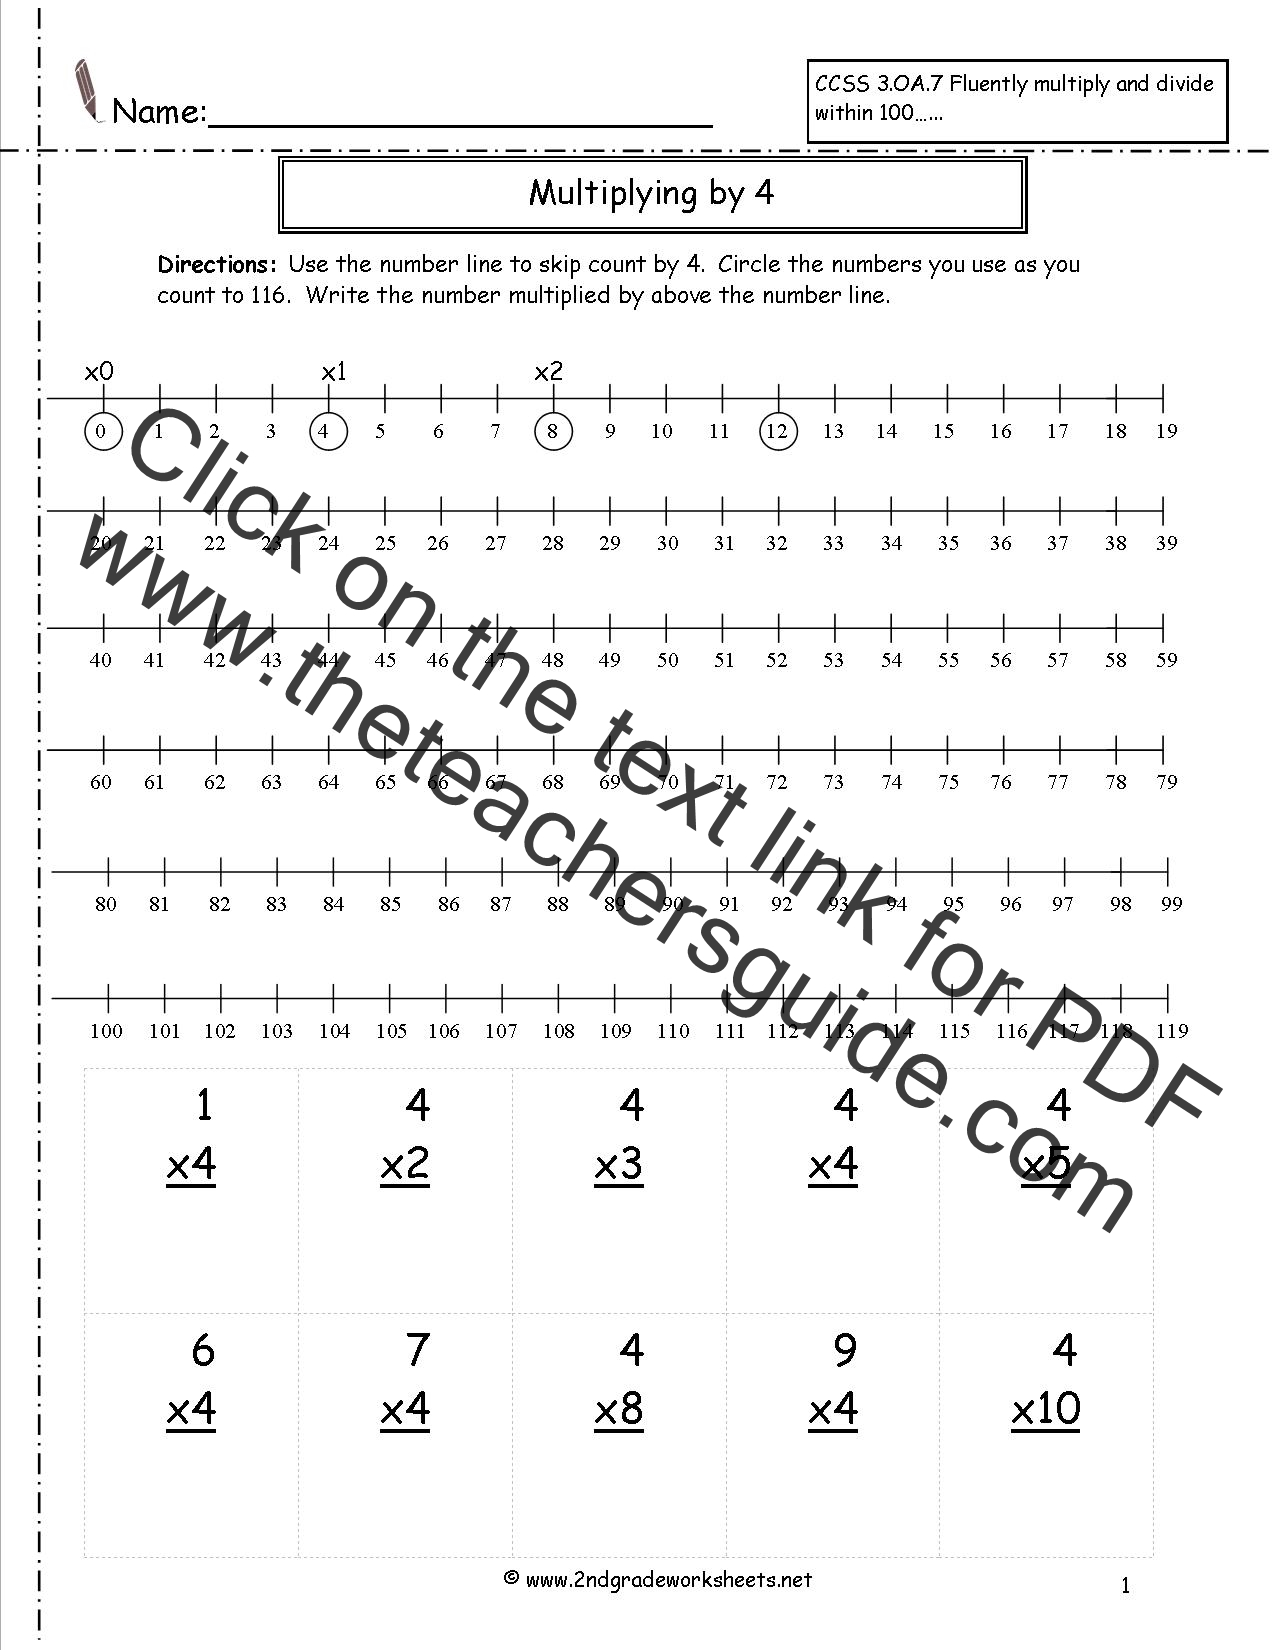 Worksheets Multiplication Worksheets For 2nd Grade worksheets and printouts multiplication by four with numberline worksheet